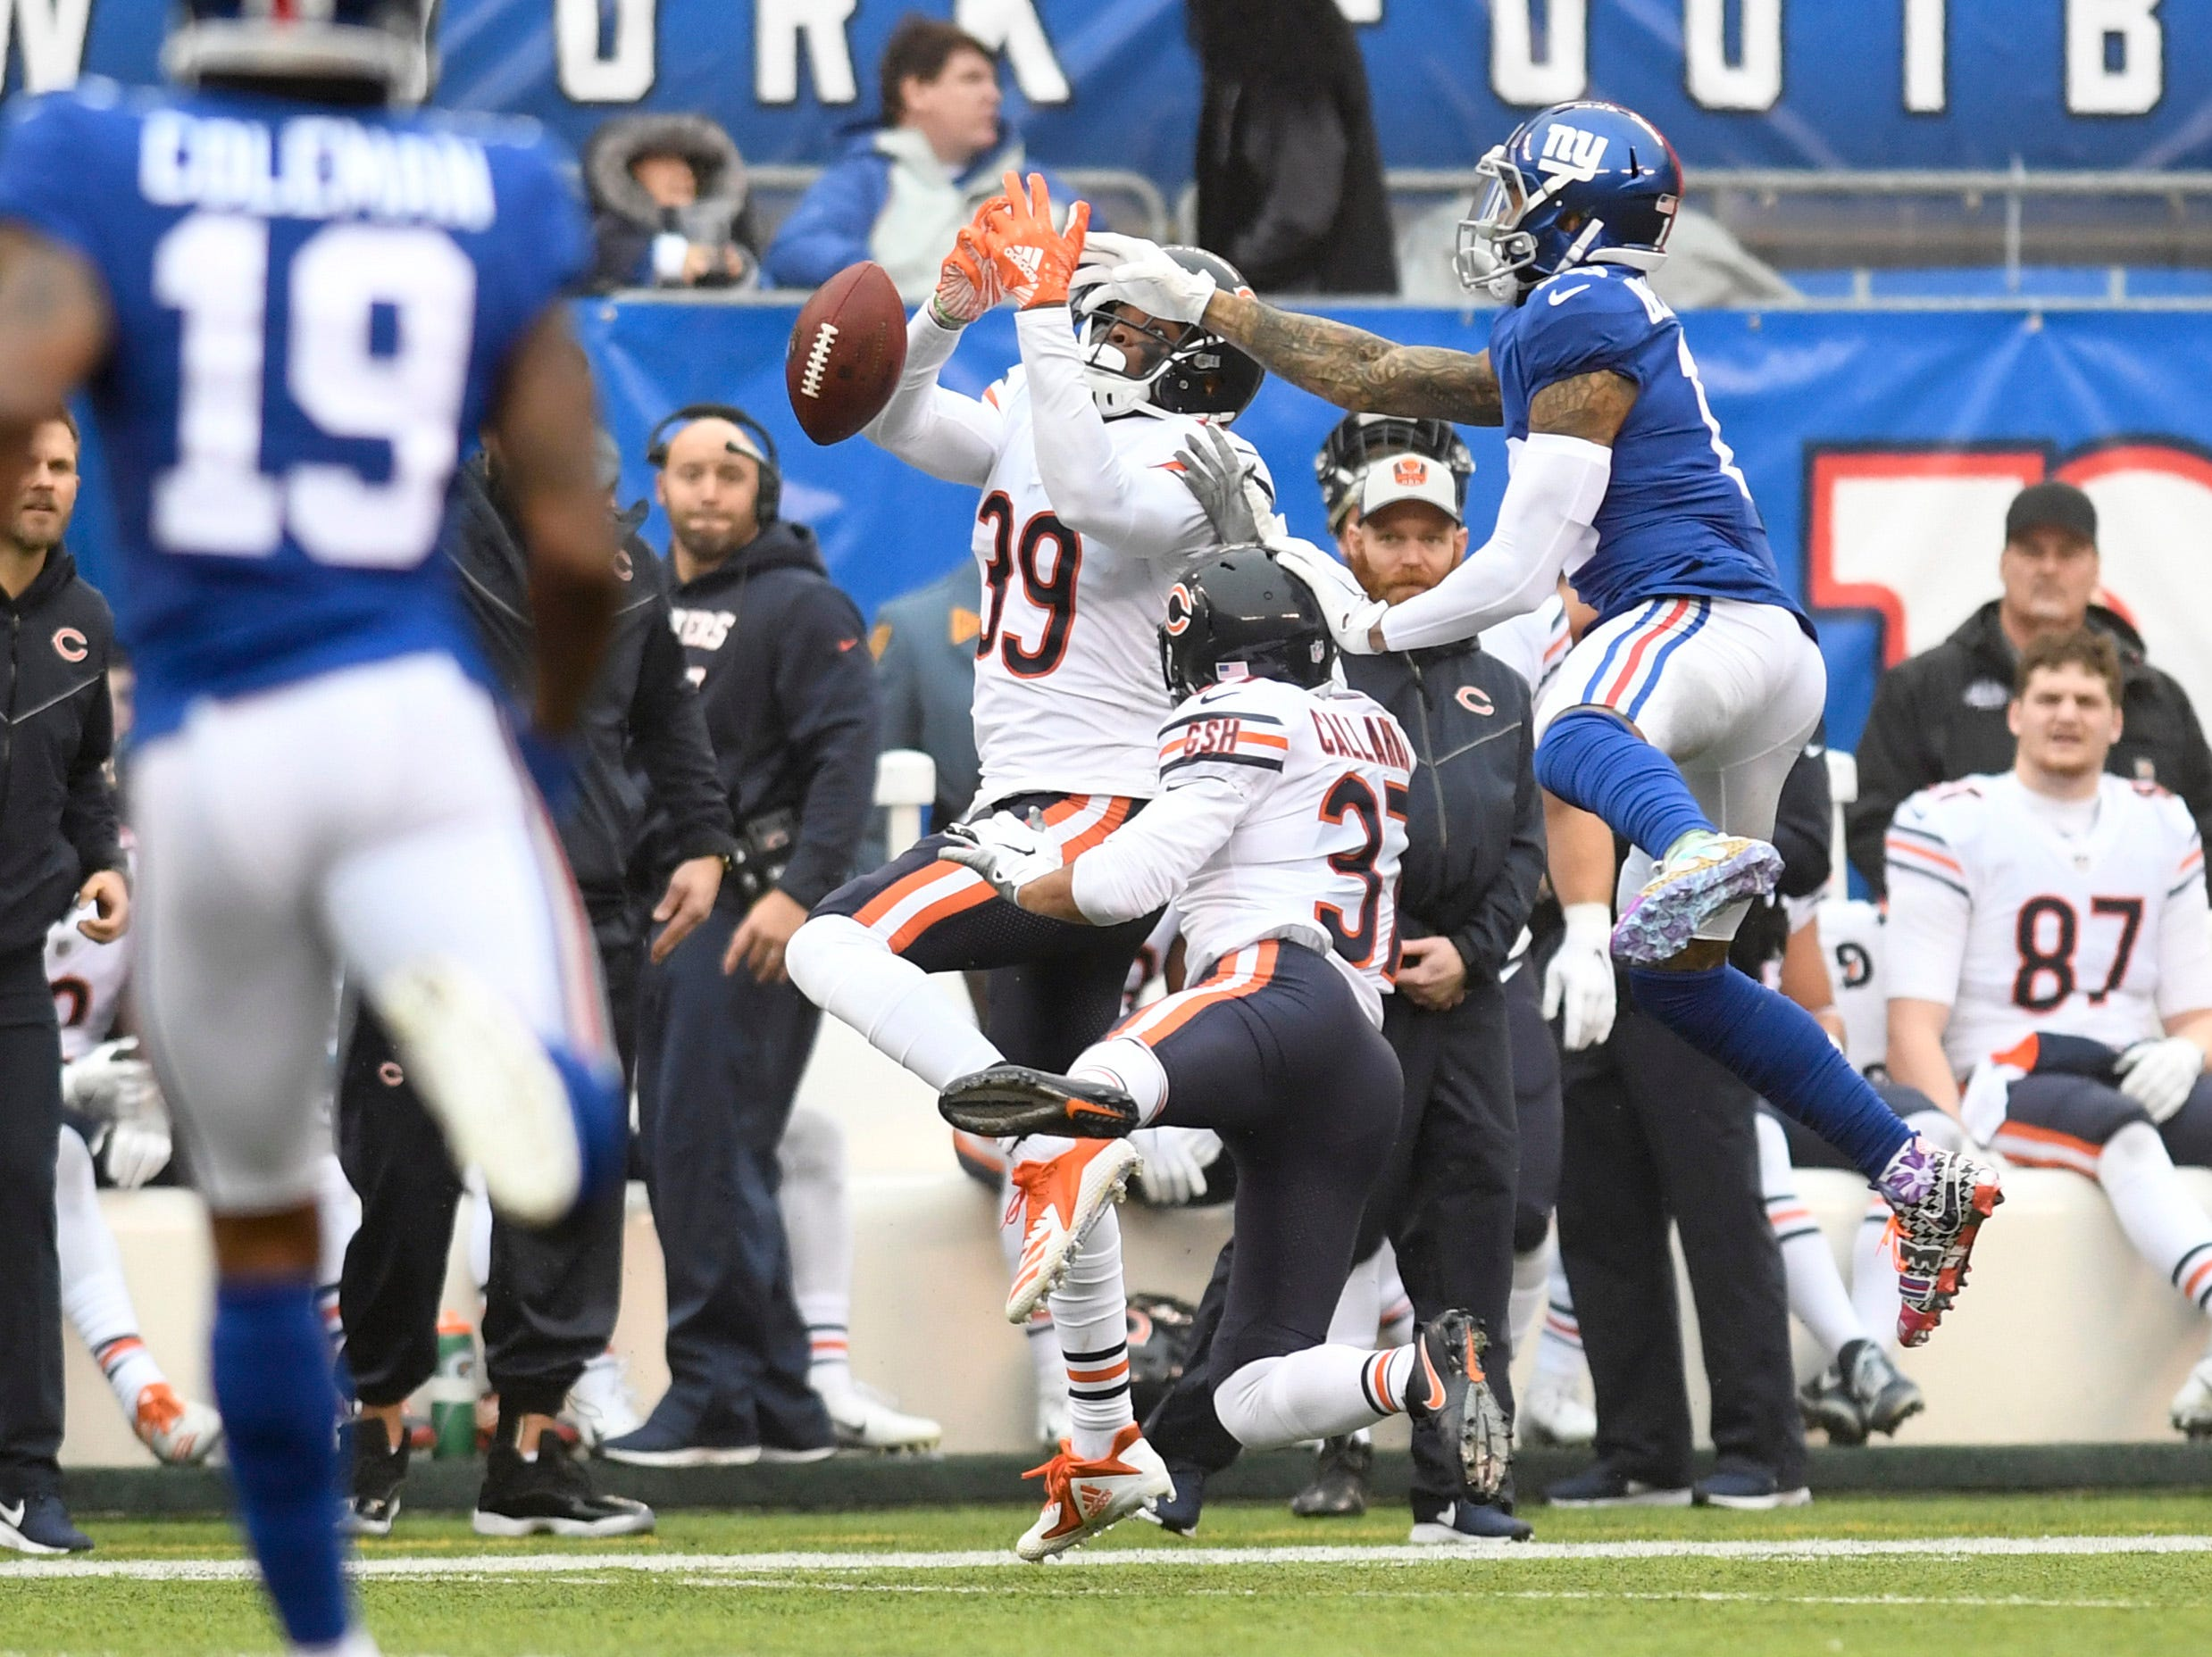 New York Giants wide receiver Odell Beckham Jr. (13) is nearly picked off by Chicago Bears safety Eddie Jackson (39) in the first half. The New York Giants face the Chicago Bears on Sunday, Dec. 2, 2018, in East Rutherford.